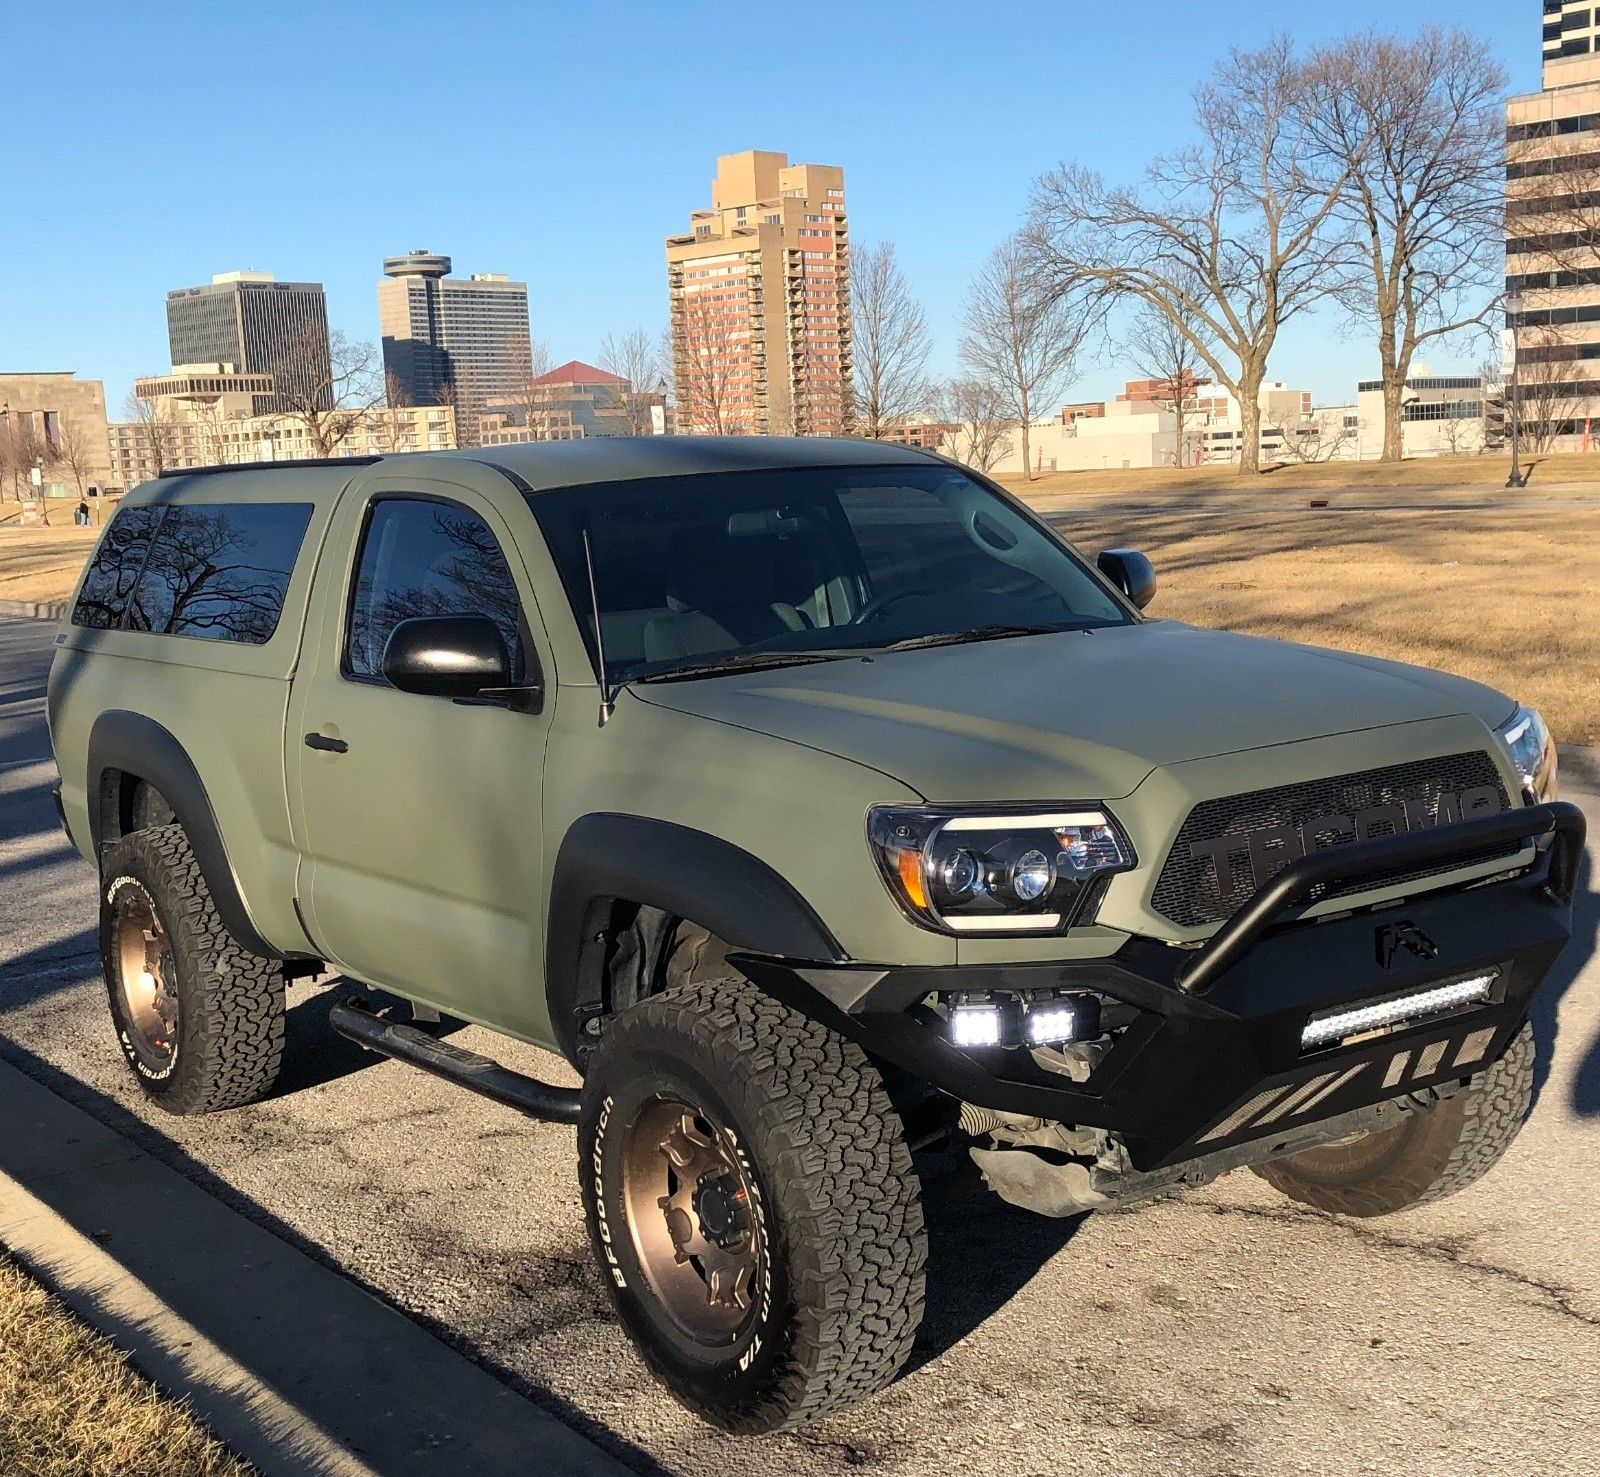 Used Toyota Campers For Sale: Camper Shell 2012 Toyota Tacoma Lifted